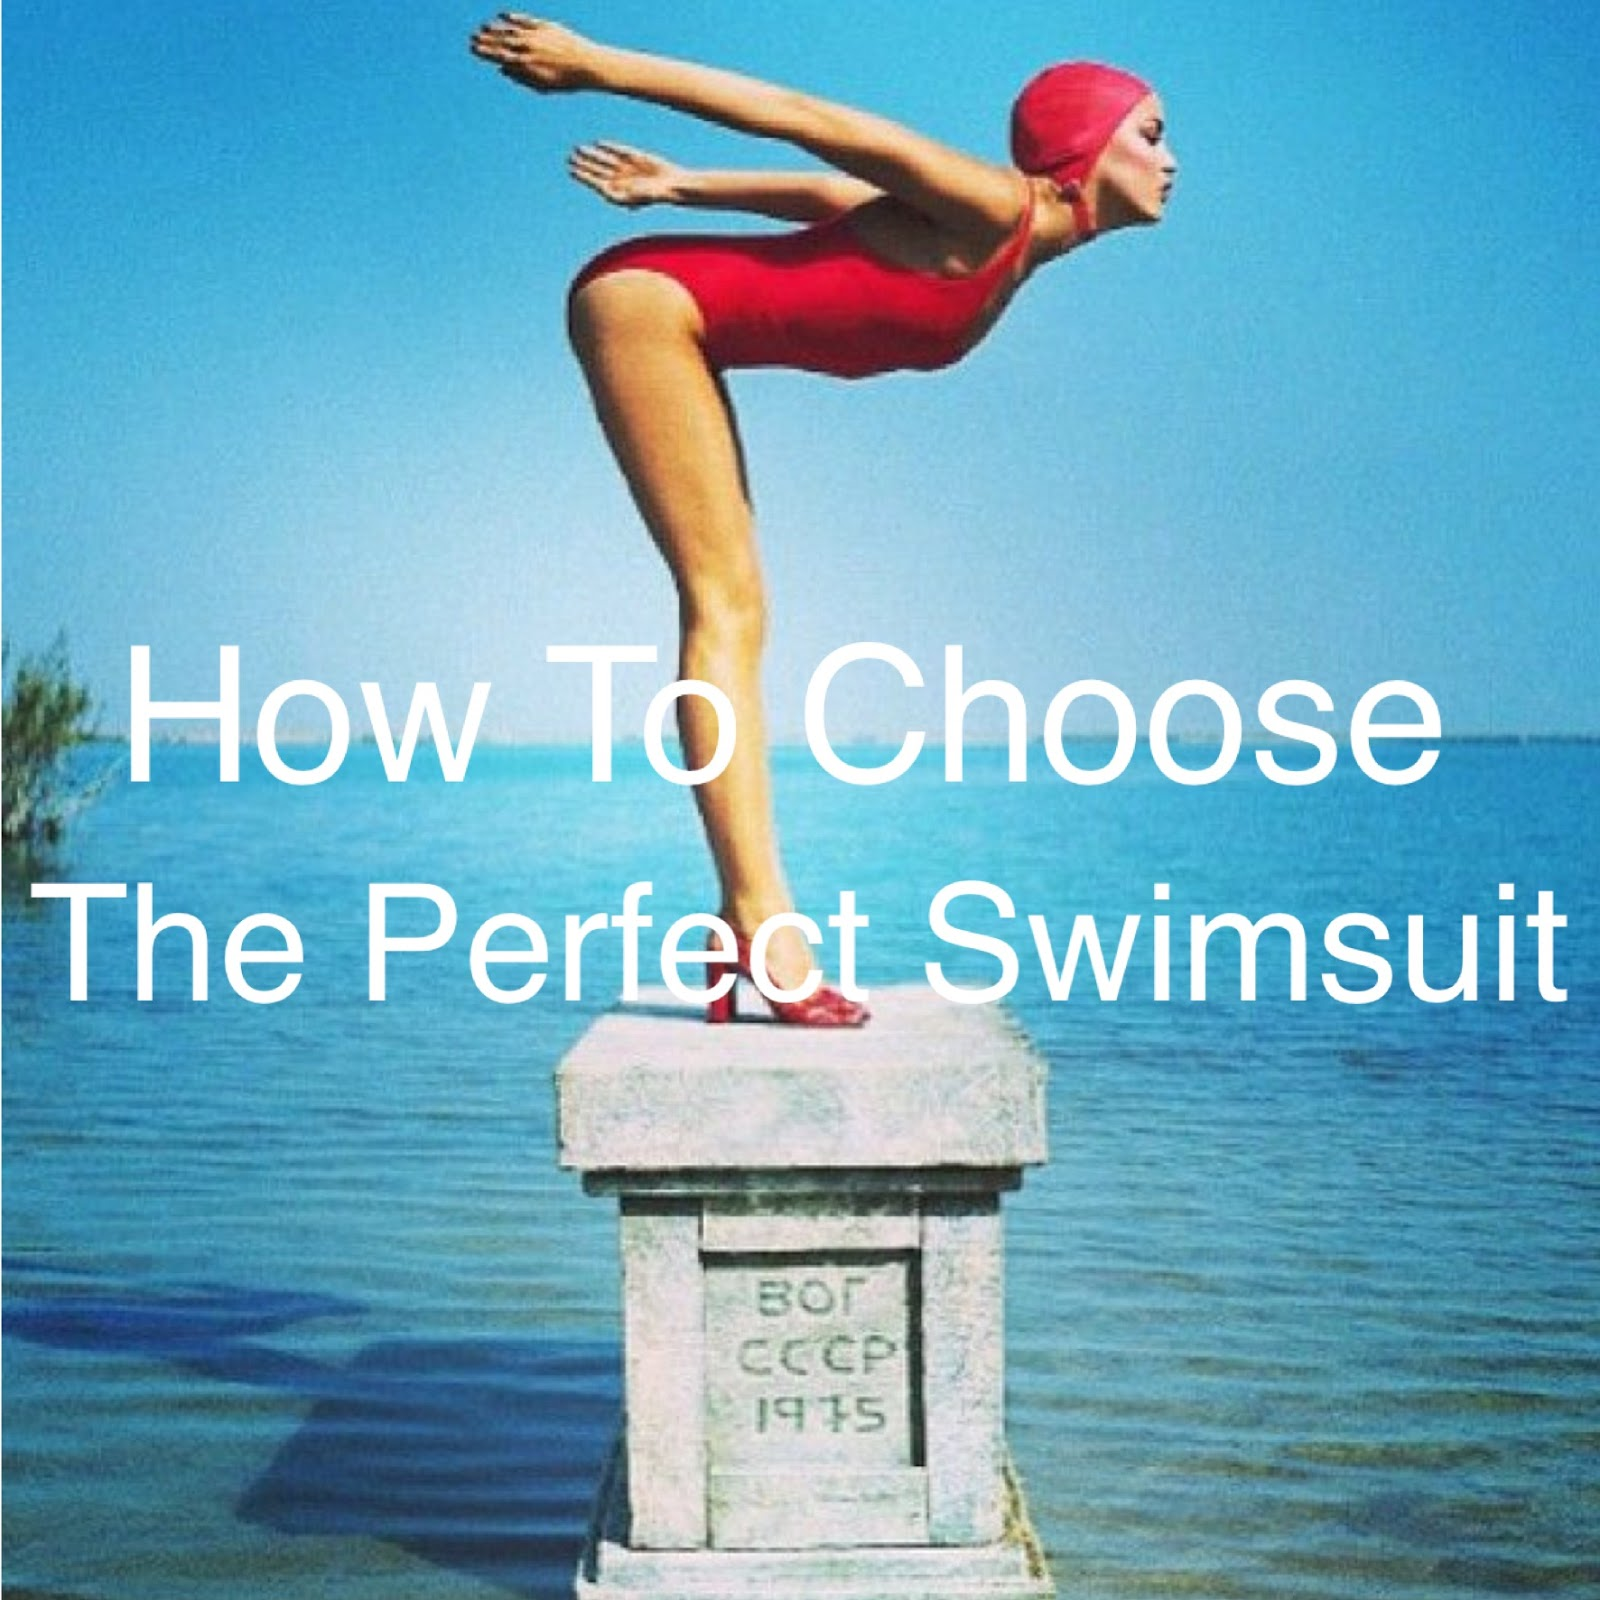 How To Choose The Perfect Swimsuit